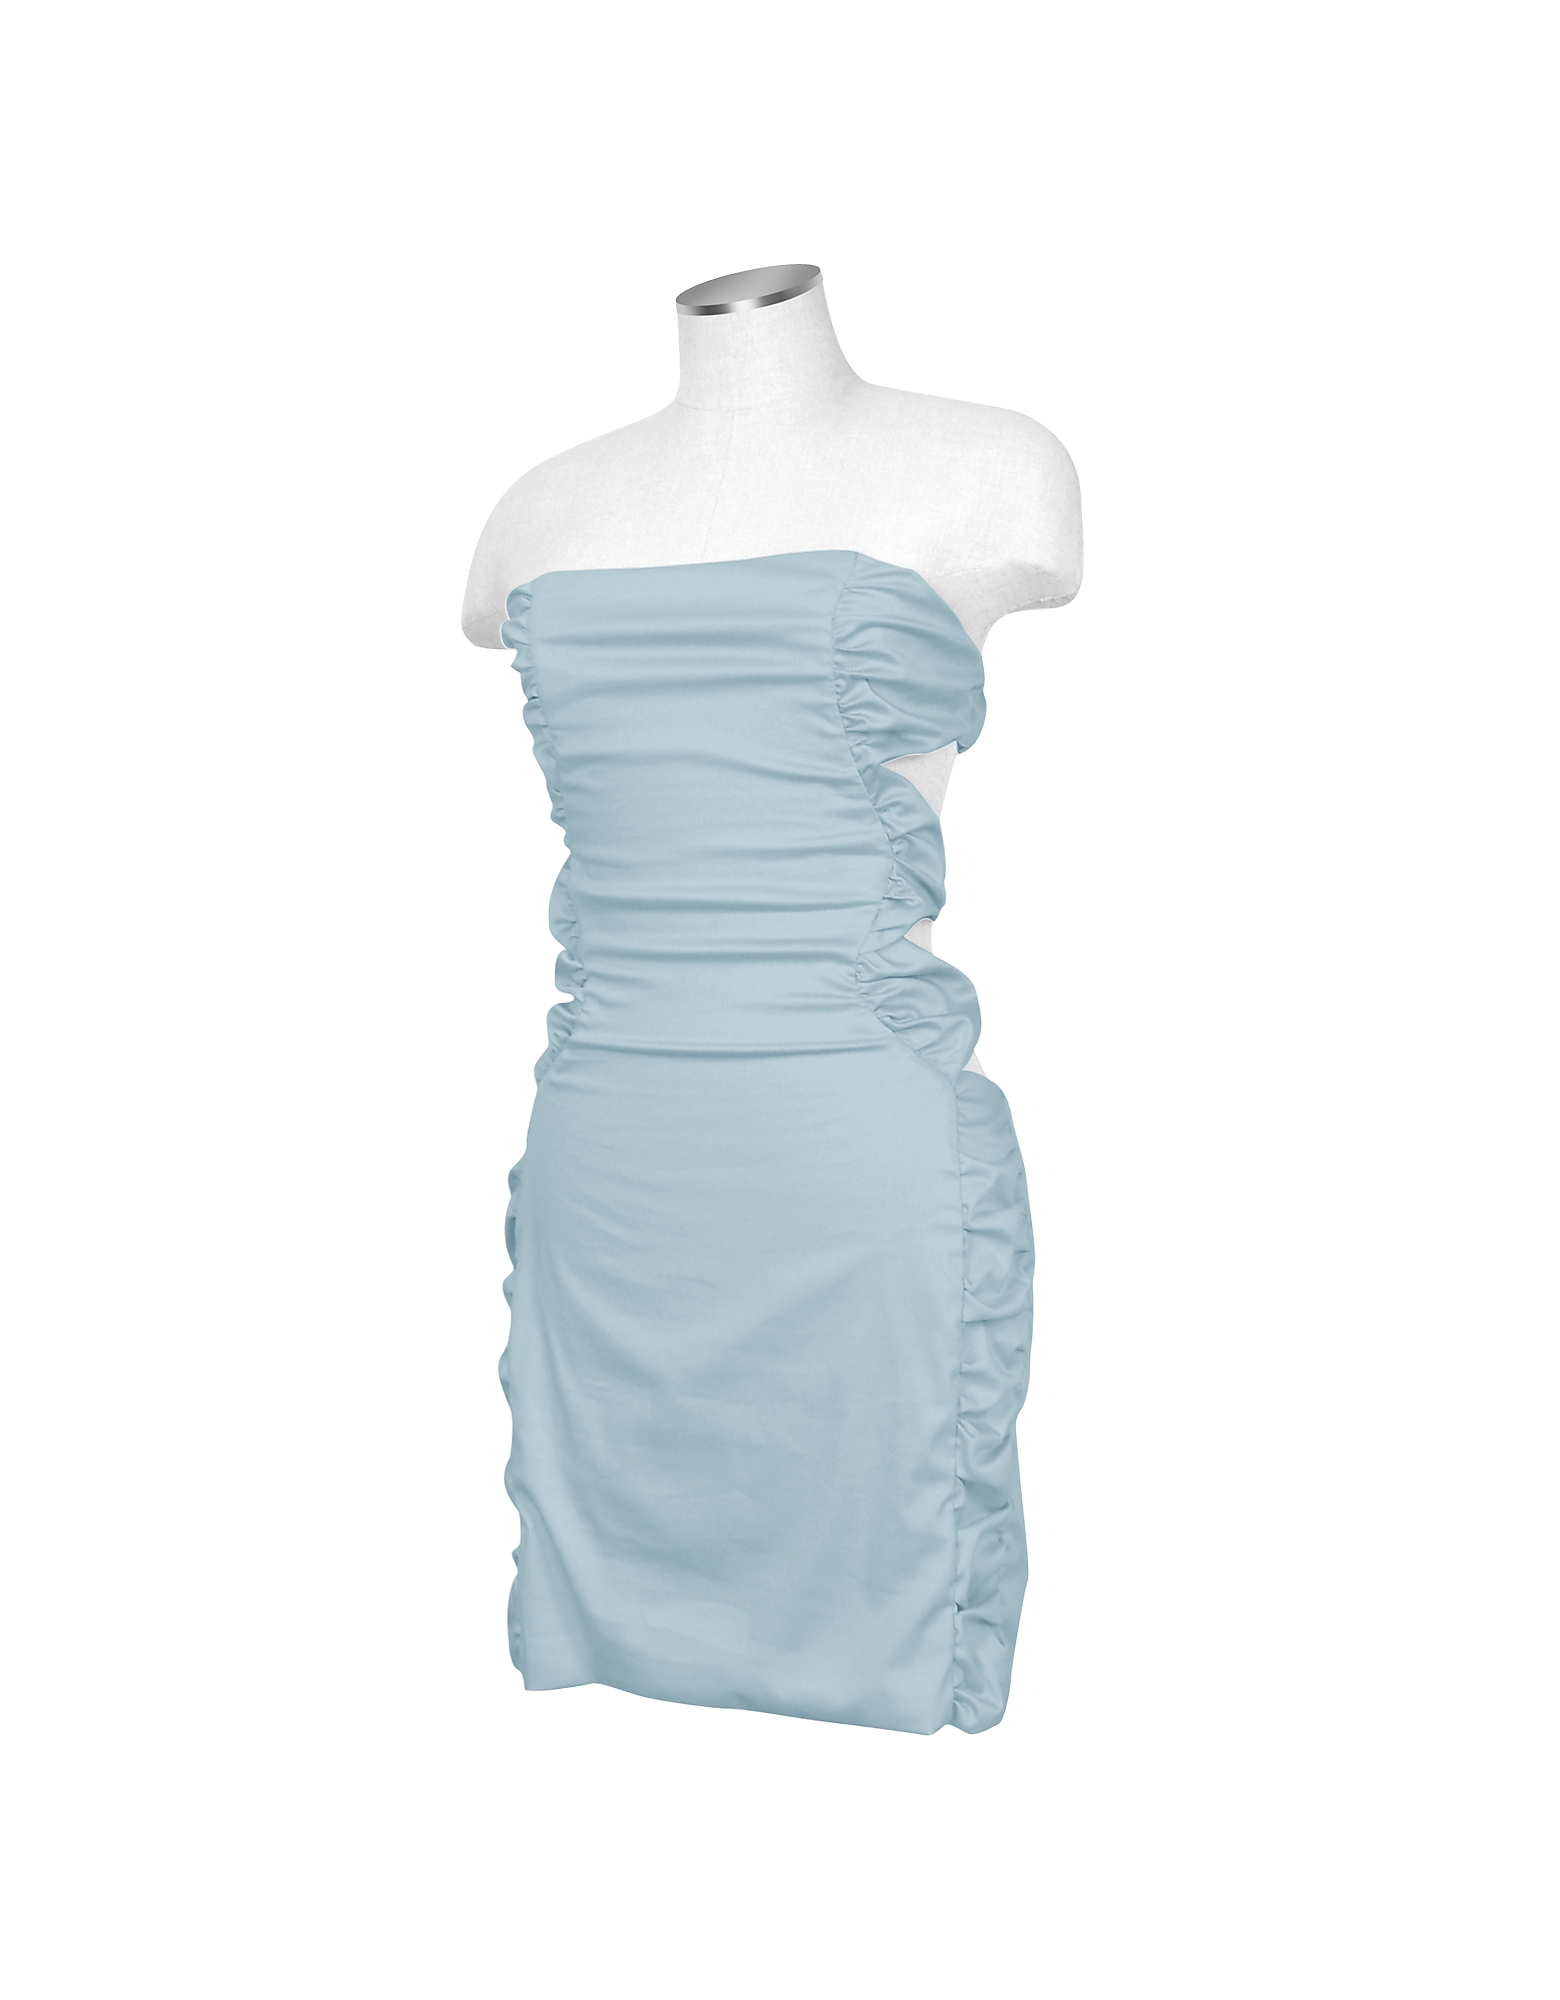 Image of Hafize Ozbudak Designer Tops & Co, Light Blue Cut-out Back Strapless Mini Cotton Dress